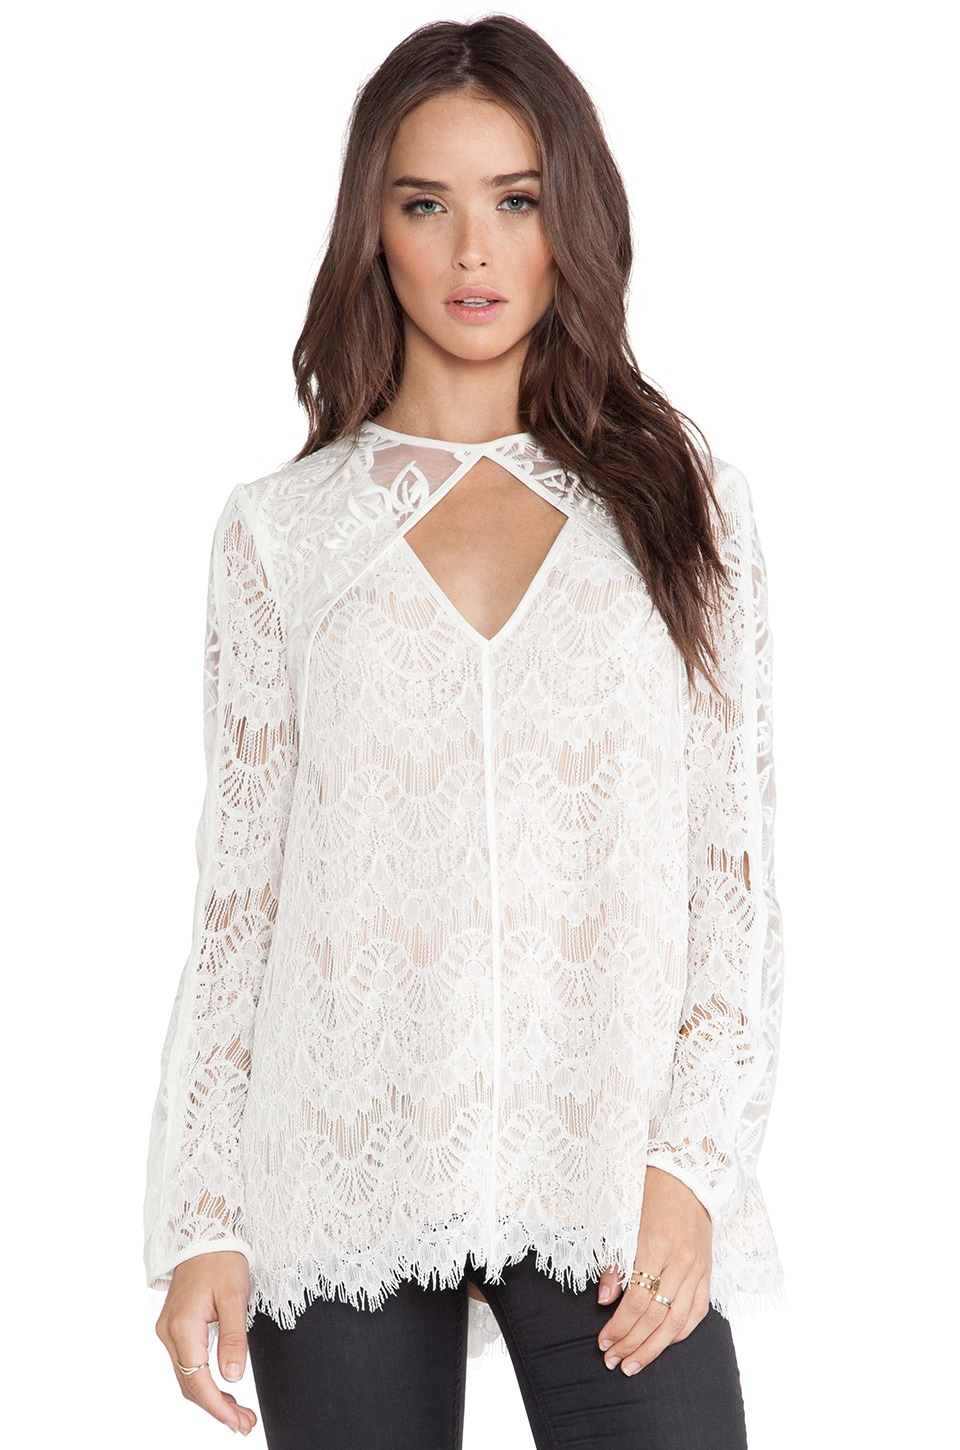 STYLESTALKER Devoted To You Blouse in White